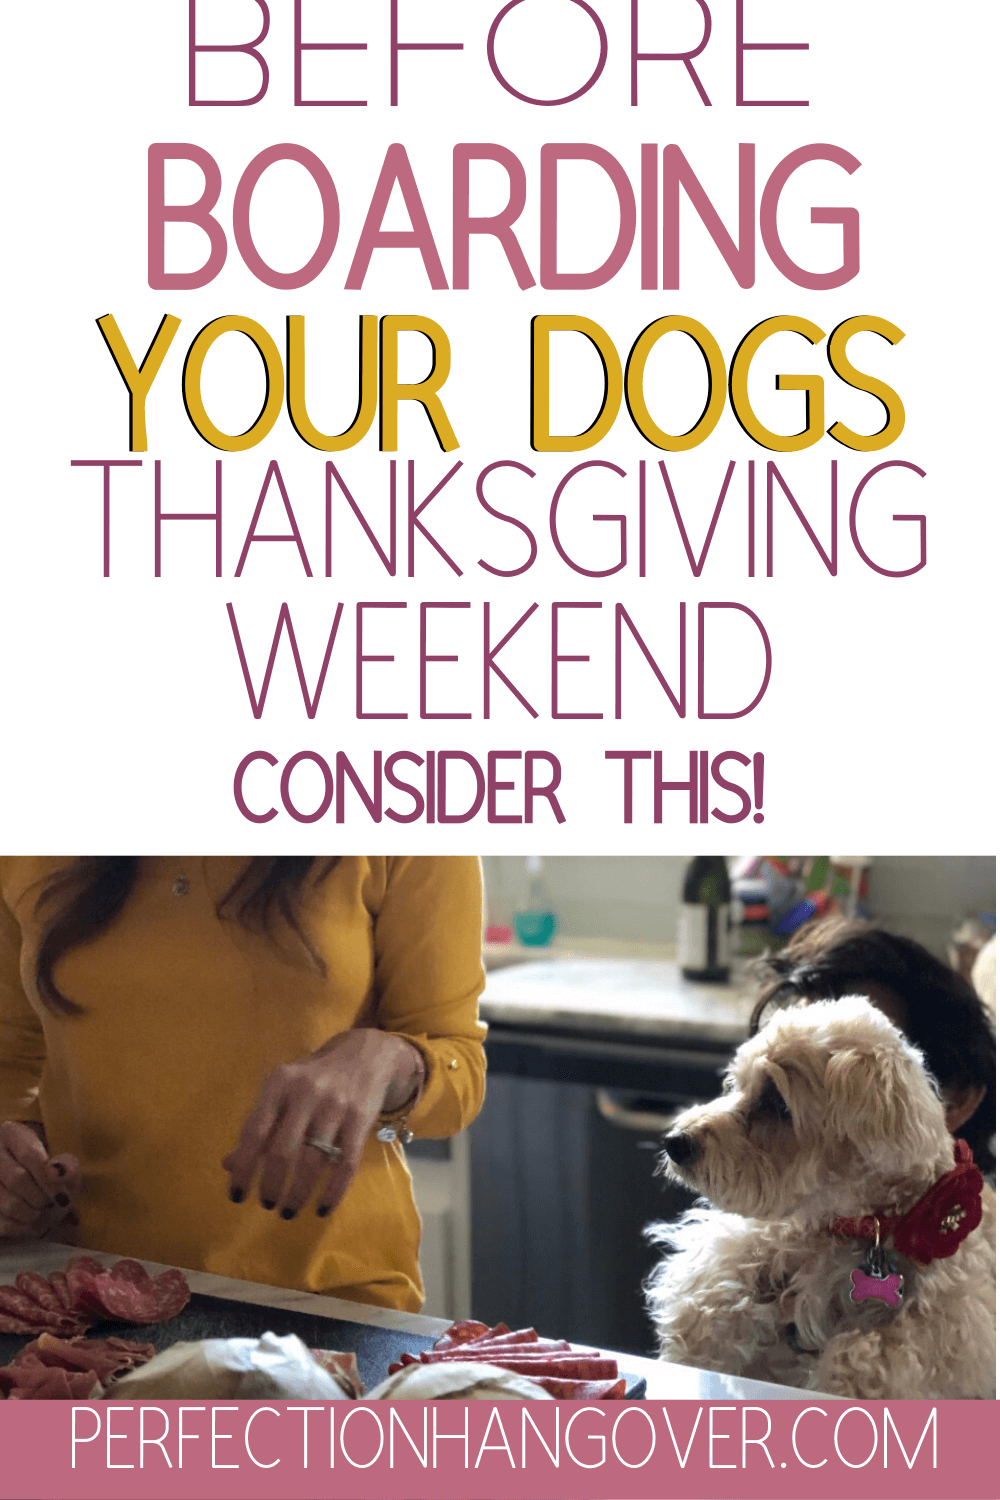 Before You Board Your Dogs Thanksgiving Weekend